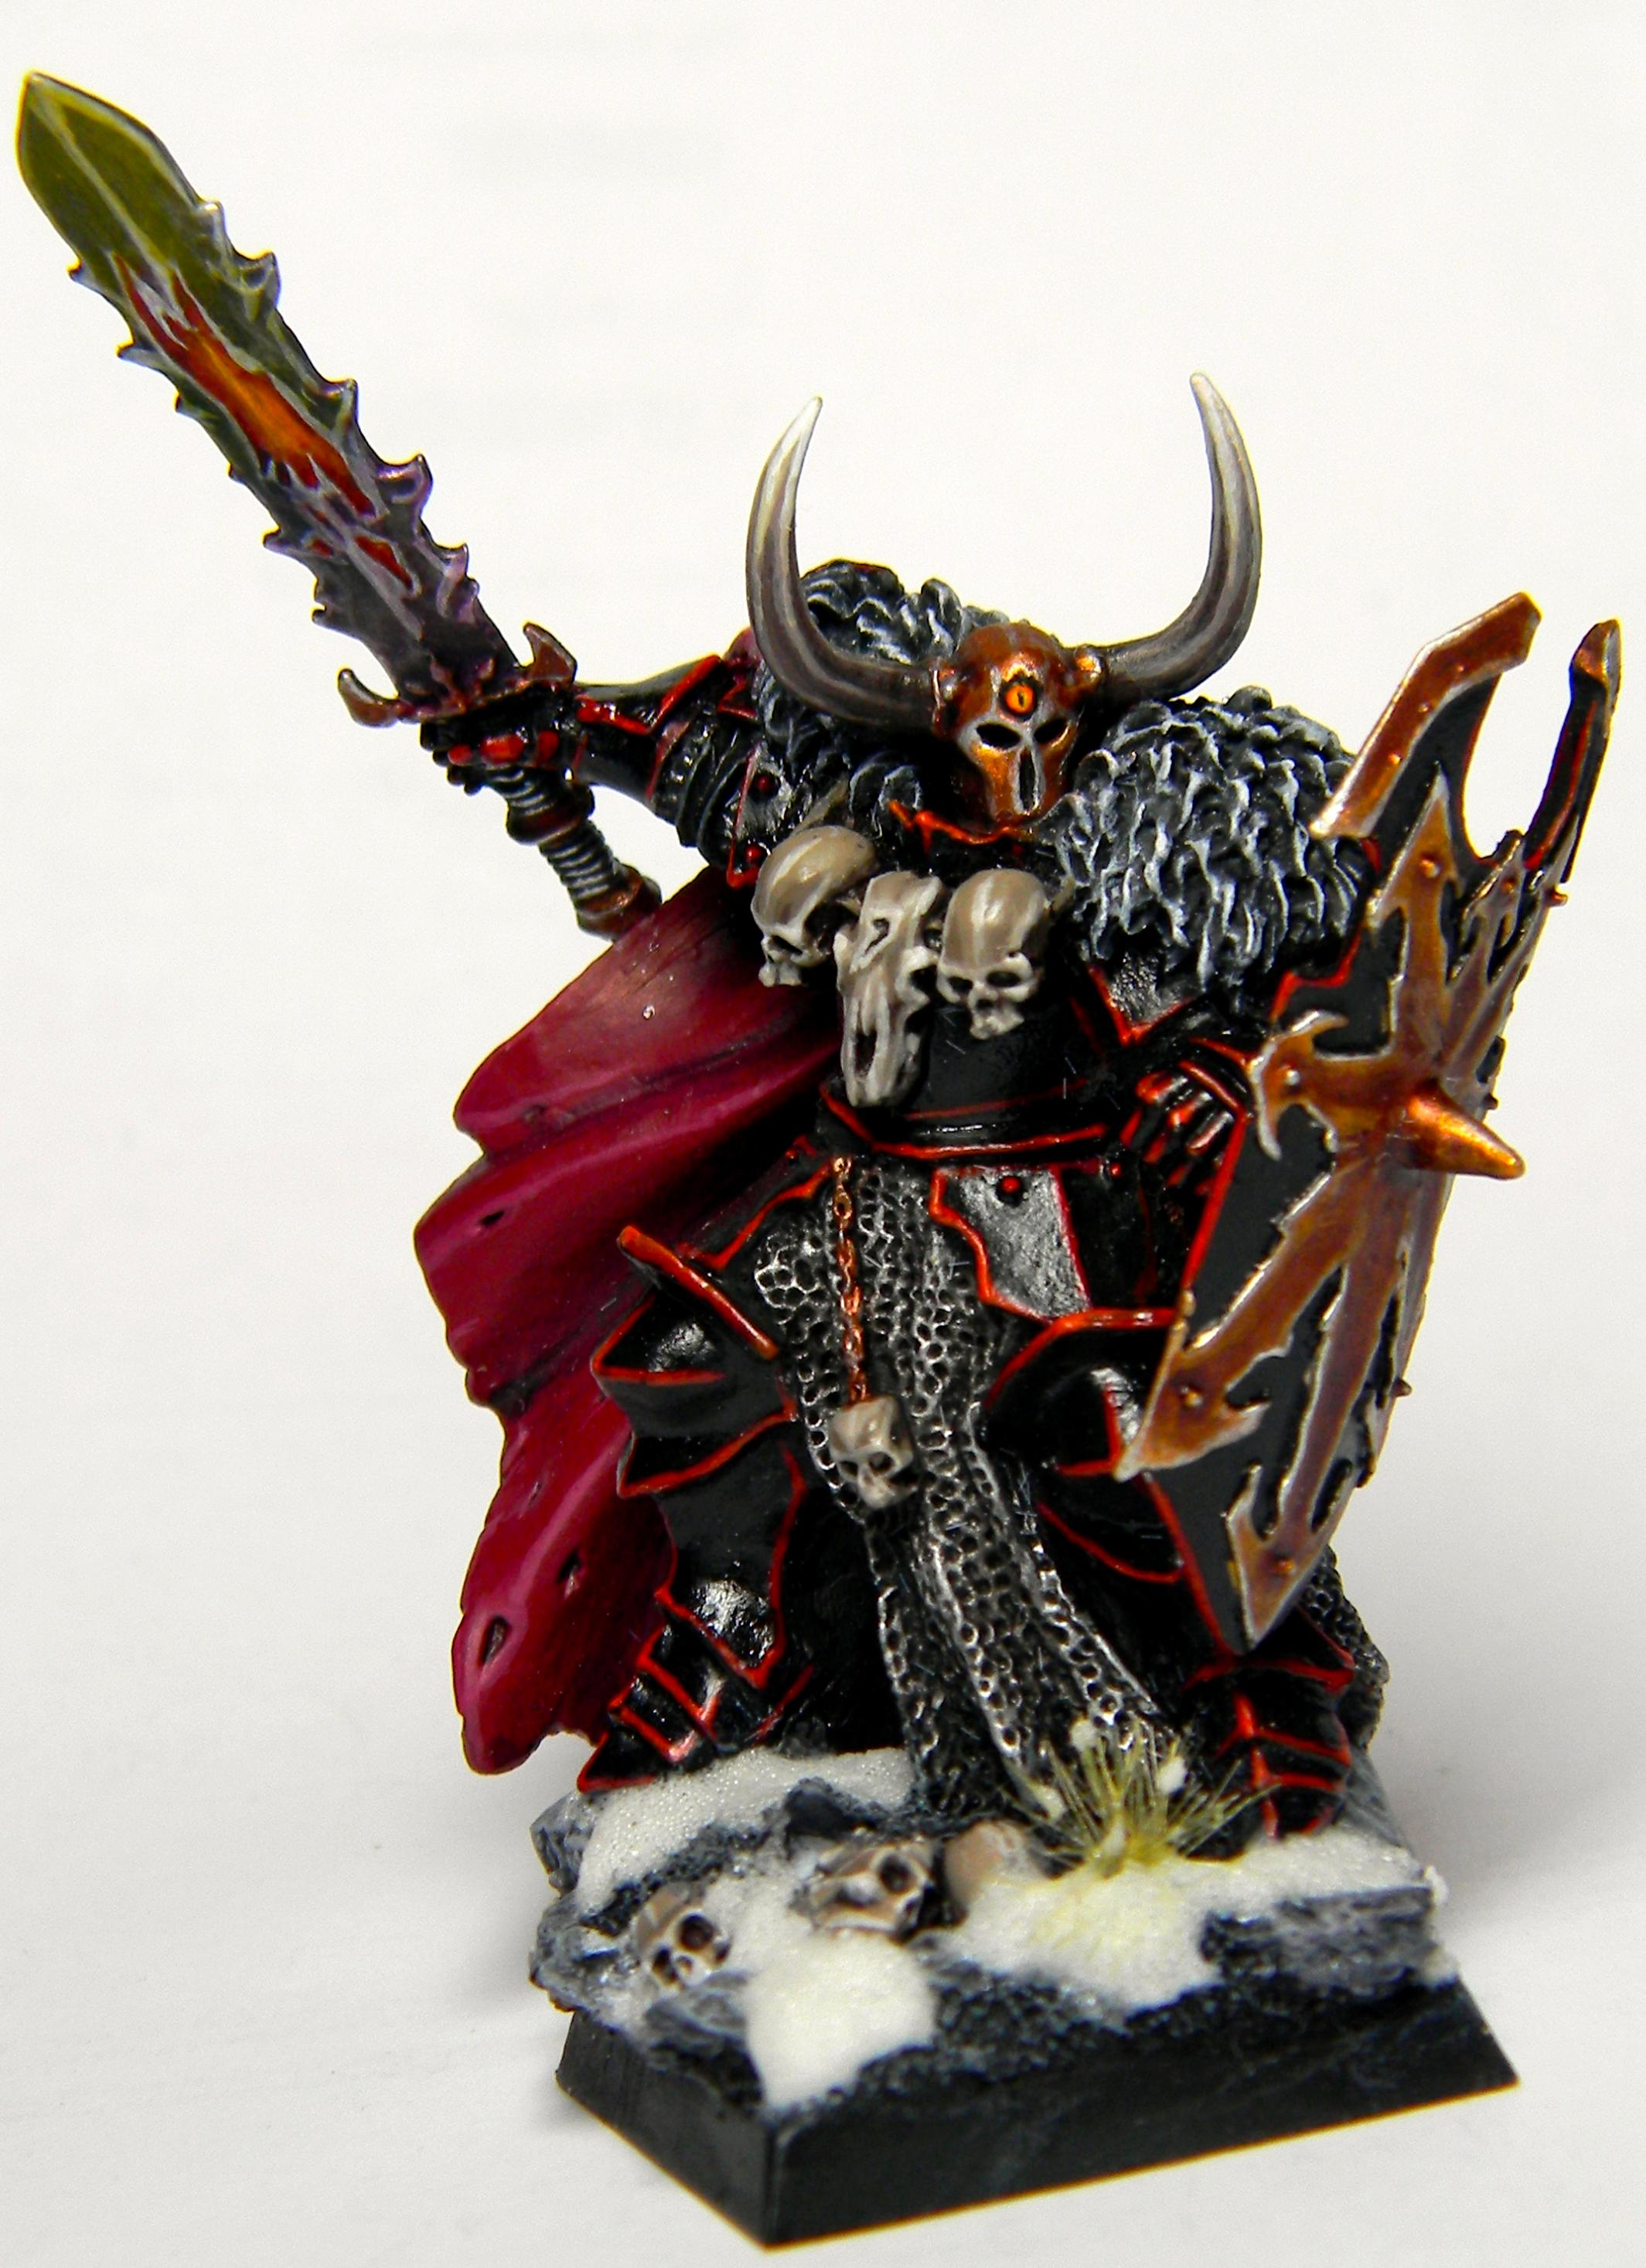 Archaon, Chaos, End Times, Hero, Lord, On Foot, Special Character, Warhammer Fantasy, Warriors